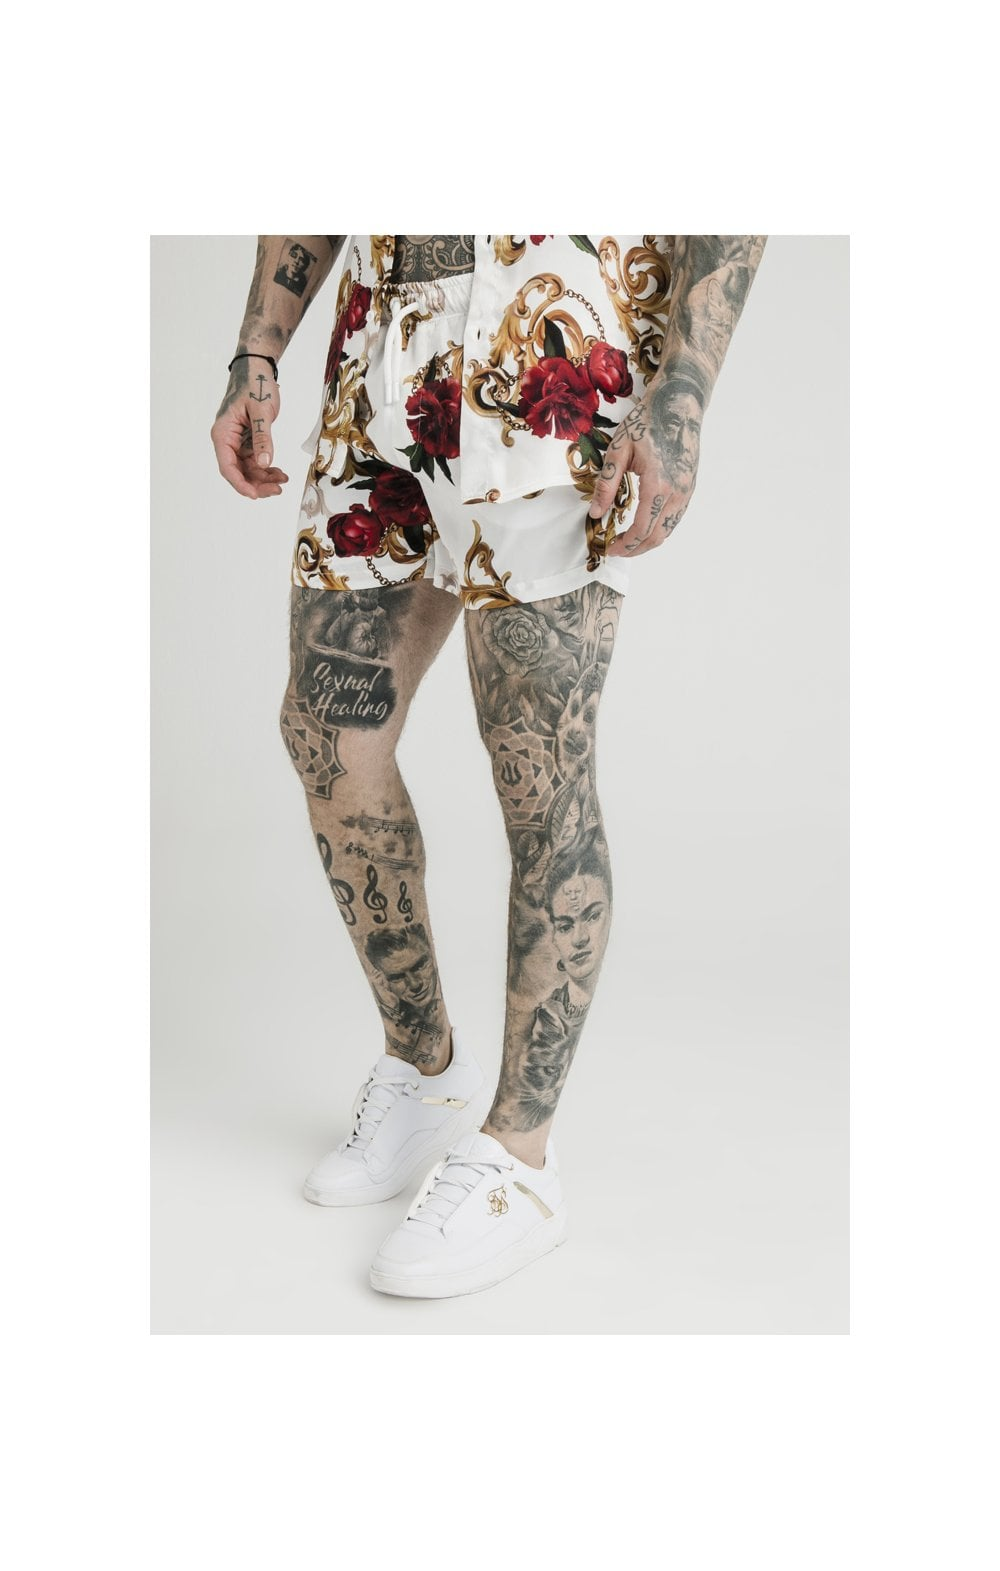 SikSilk x Dani Alves Swim Shorts - Floral Elegance (1)